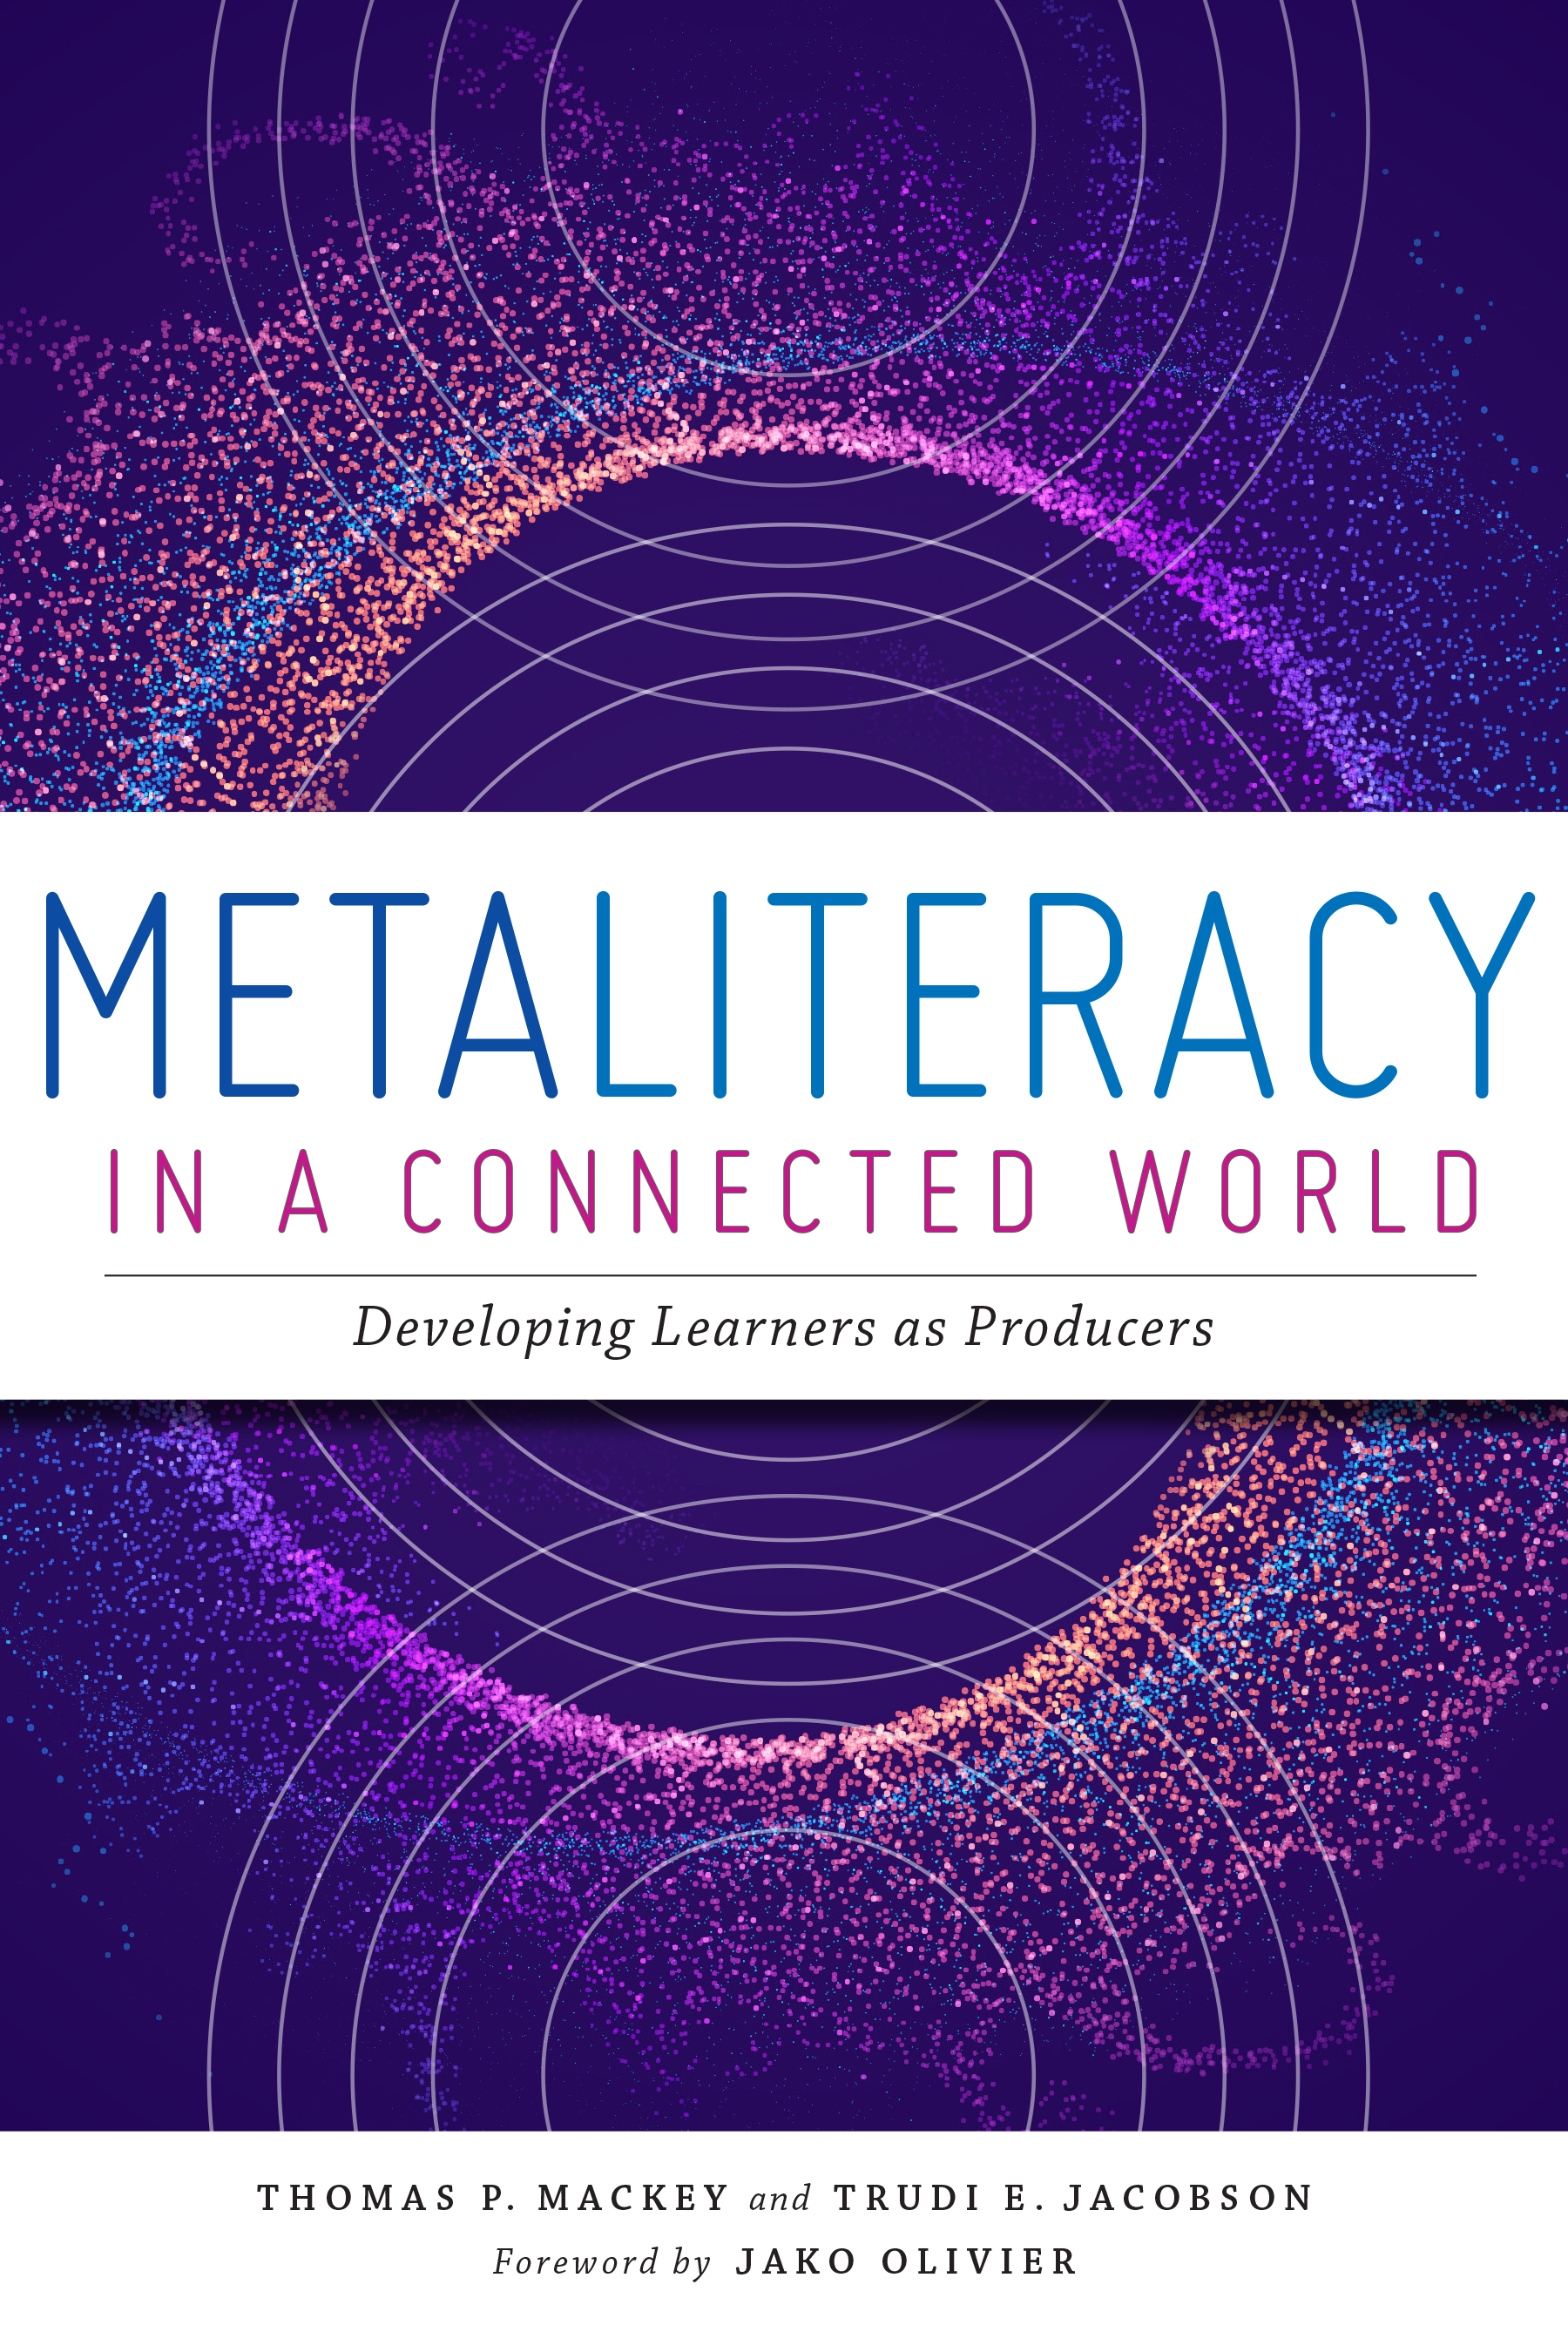 Image for Metaliteracy in a Connected World: Developing Learners as Producers